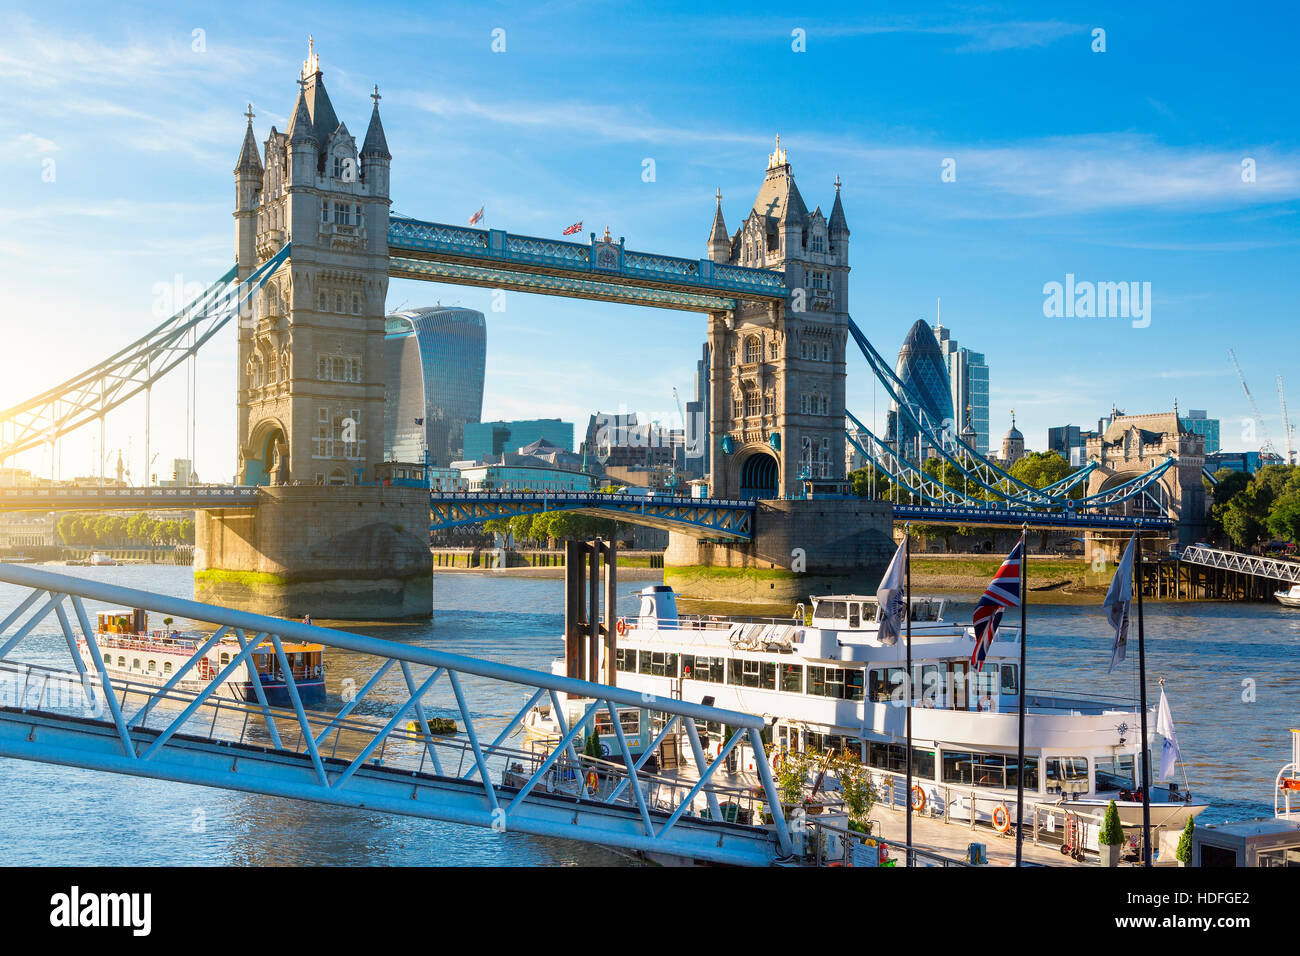 Financial District of London and the Tower Bridge - Stock Image